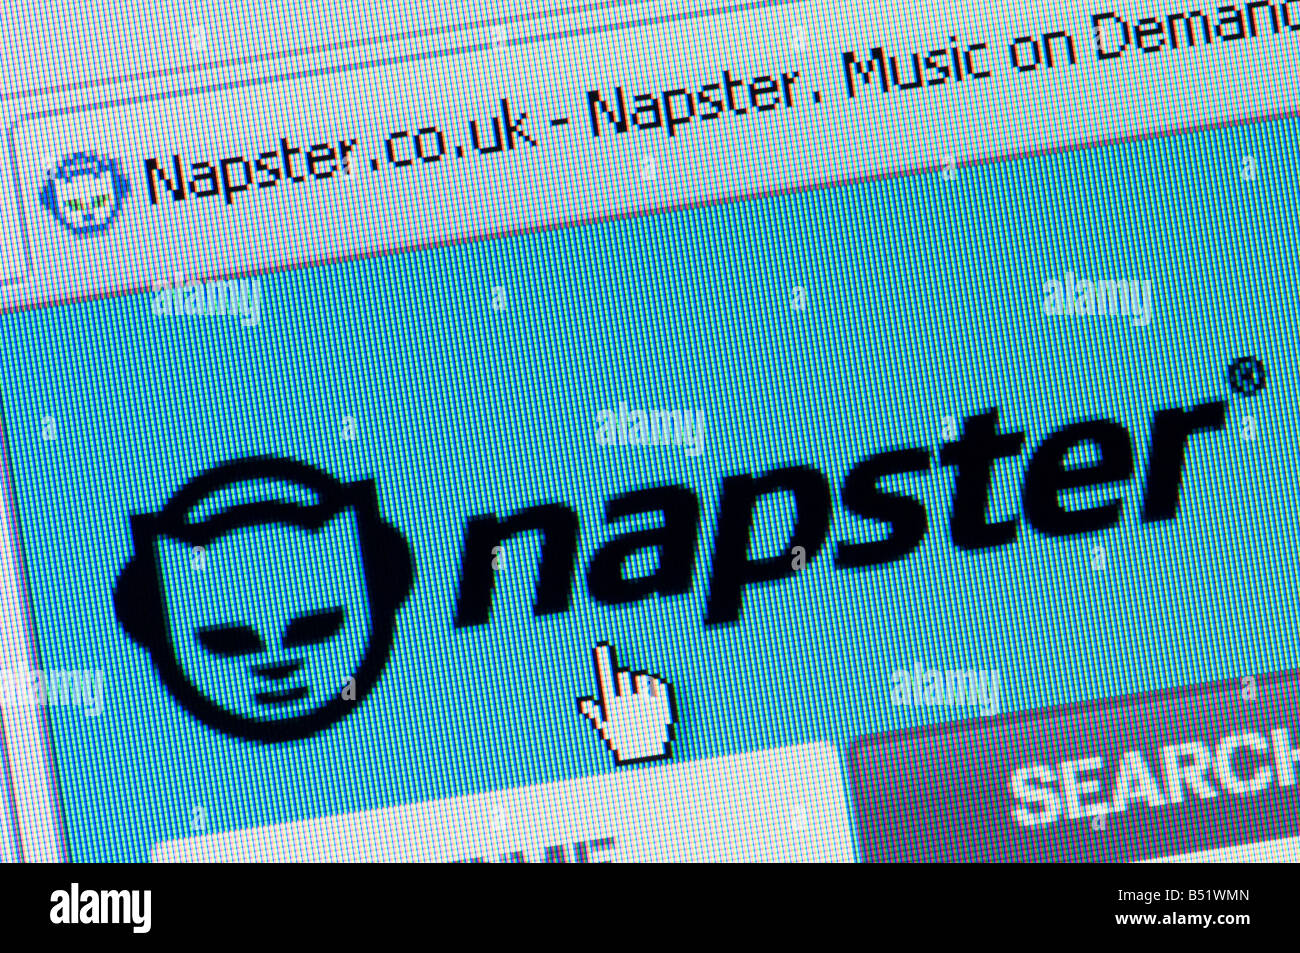 How to download napster music for free (no jailbreak / no computer.